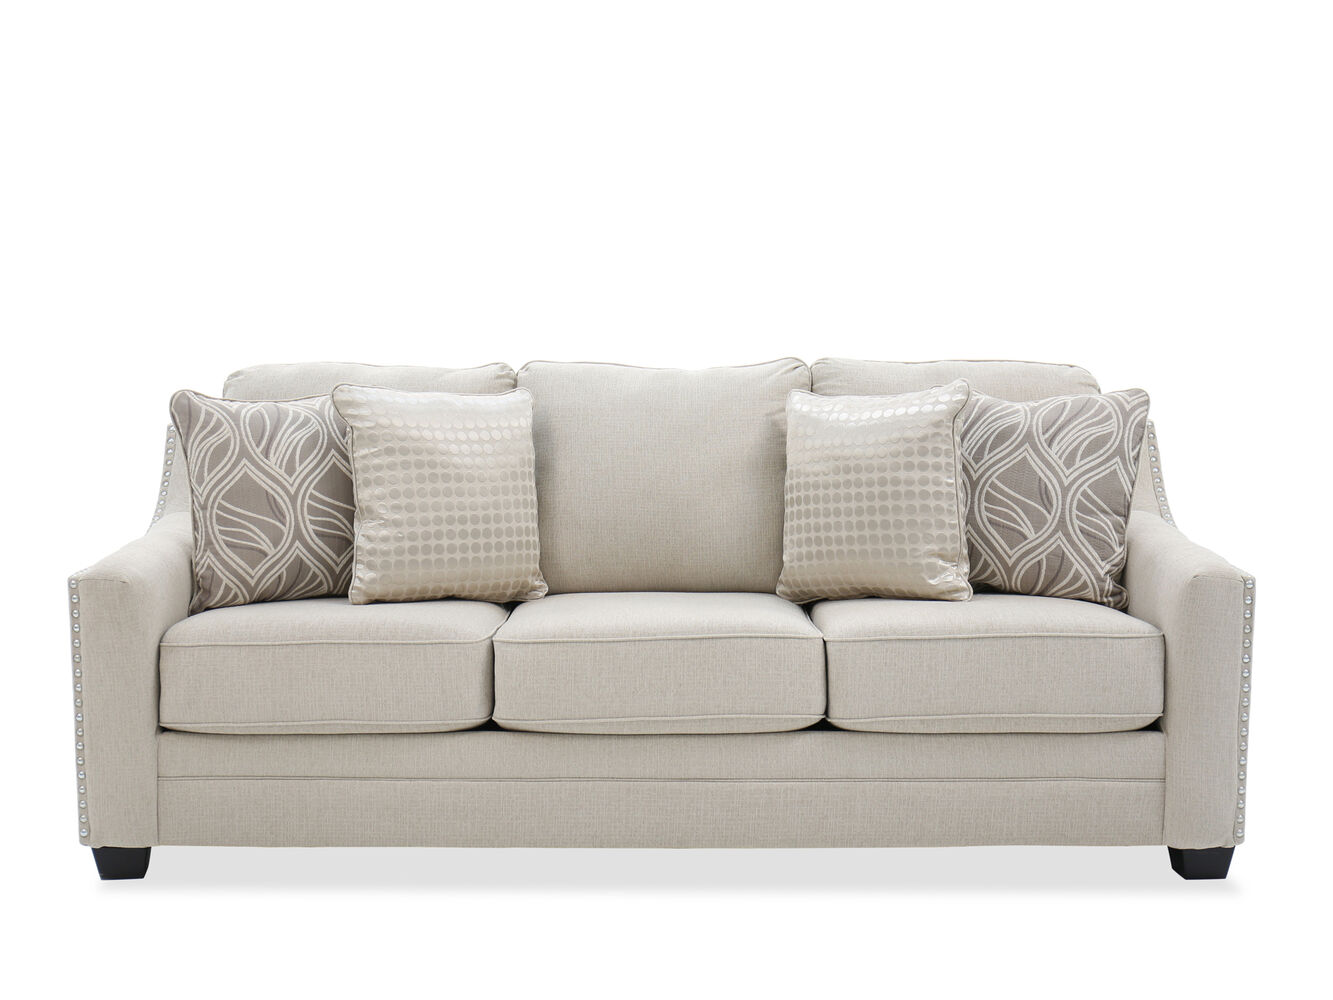 Straight arm quot sofa in linen mathis brothers furniture